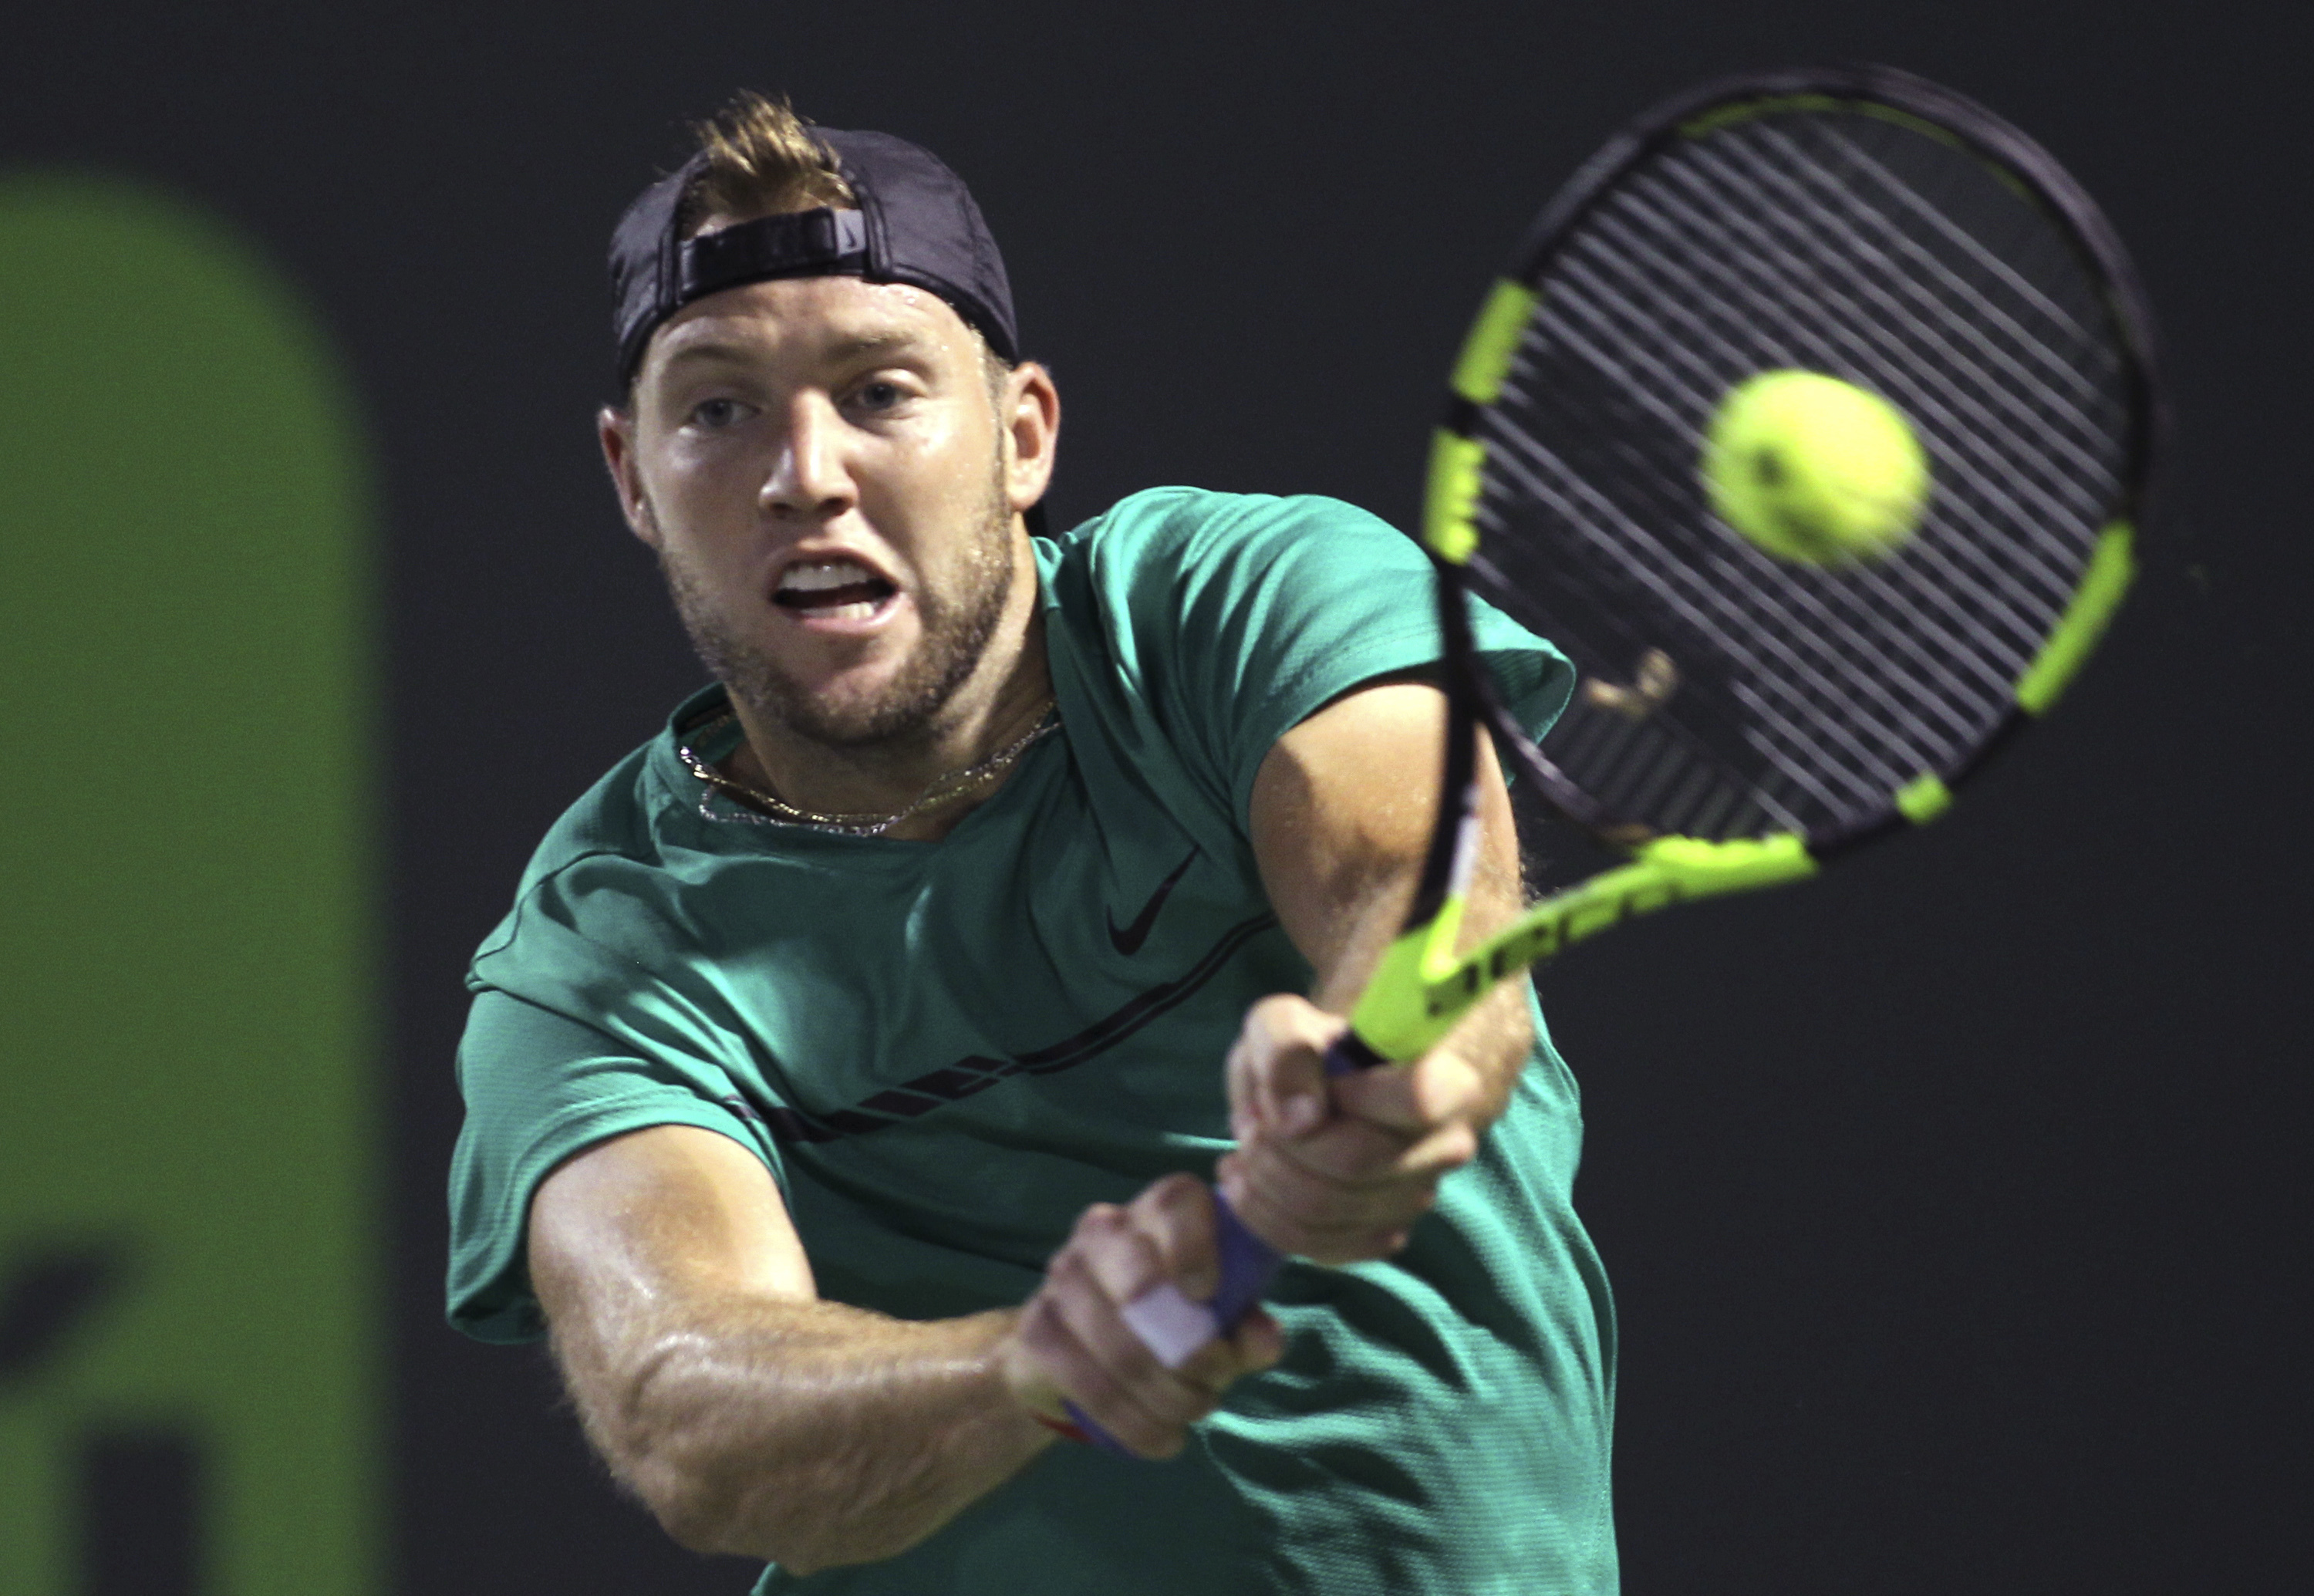 Jack Sock, of the United States, hits a return to Jiri Vesely, of the Czech Republic, during the Miami Open tennis tournament, Sunday, March 26, 2017, in Key Biscayne, Fla. Sock won 6-3, 7-6(0). (AP Photo/Luis M. Alvarez)